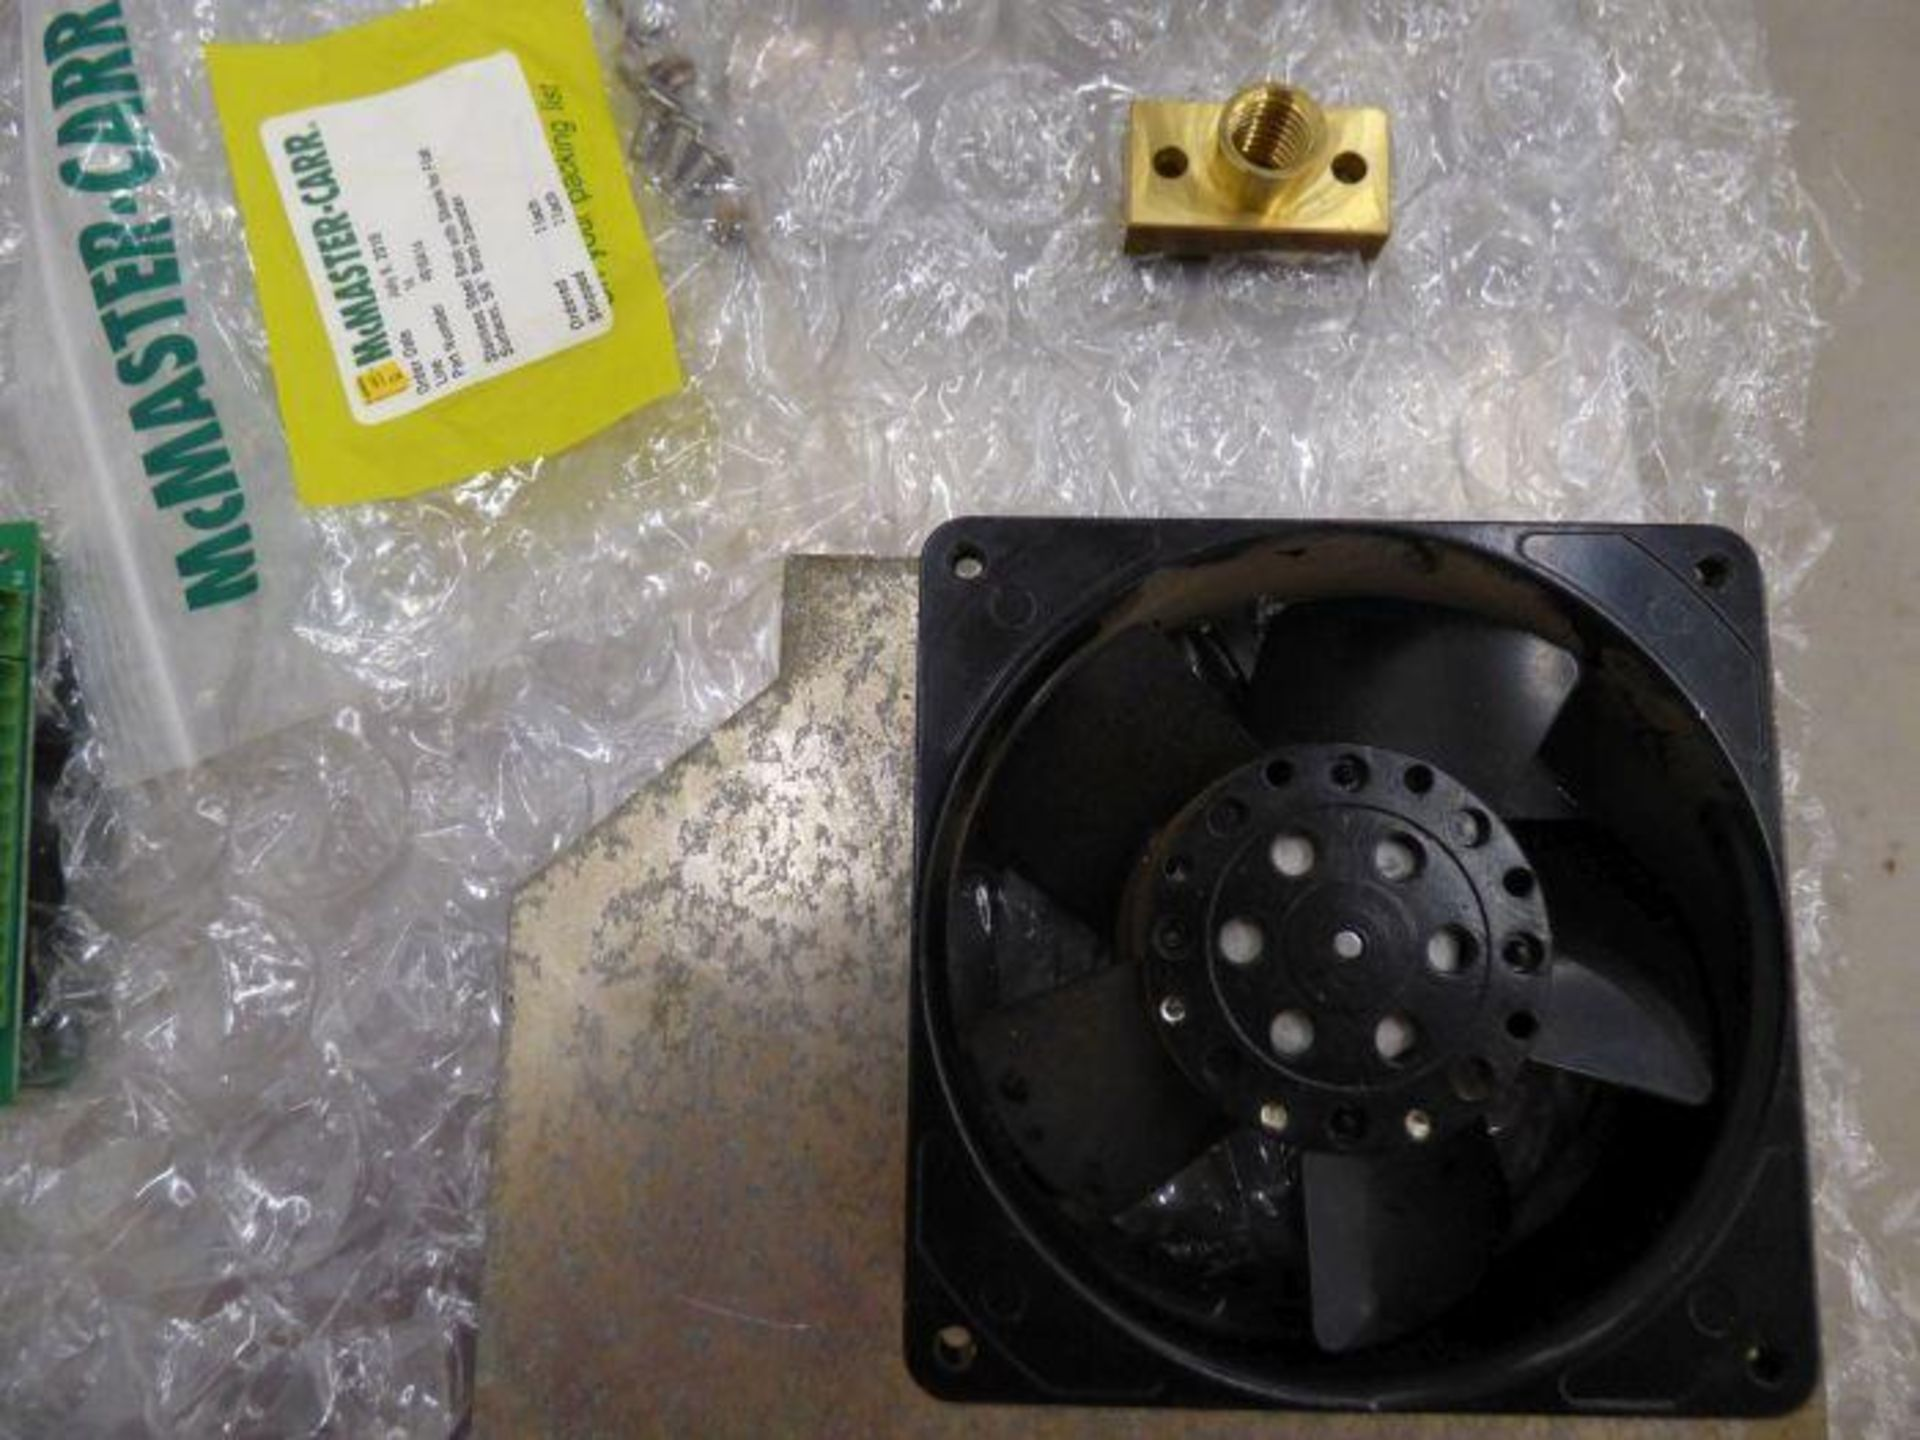 Enercon Super Seal Touch 100 with Spare Parts - Image 13 of 17